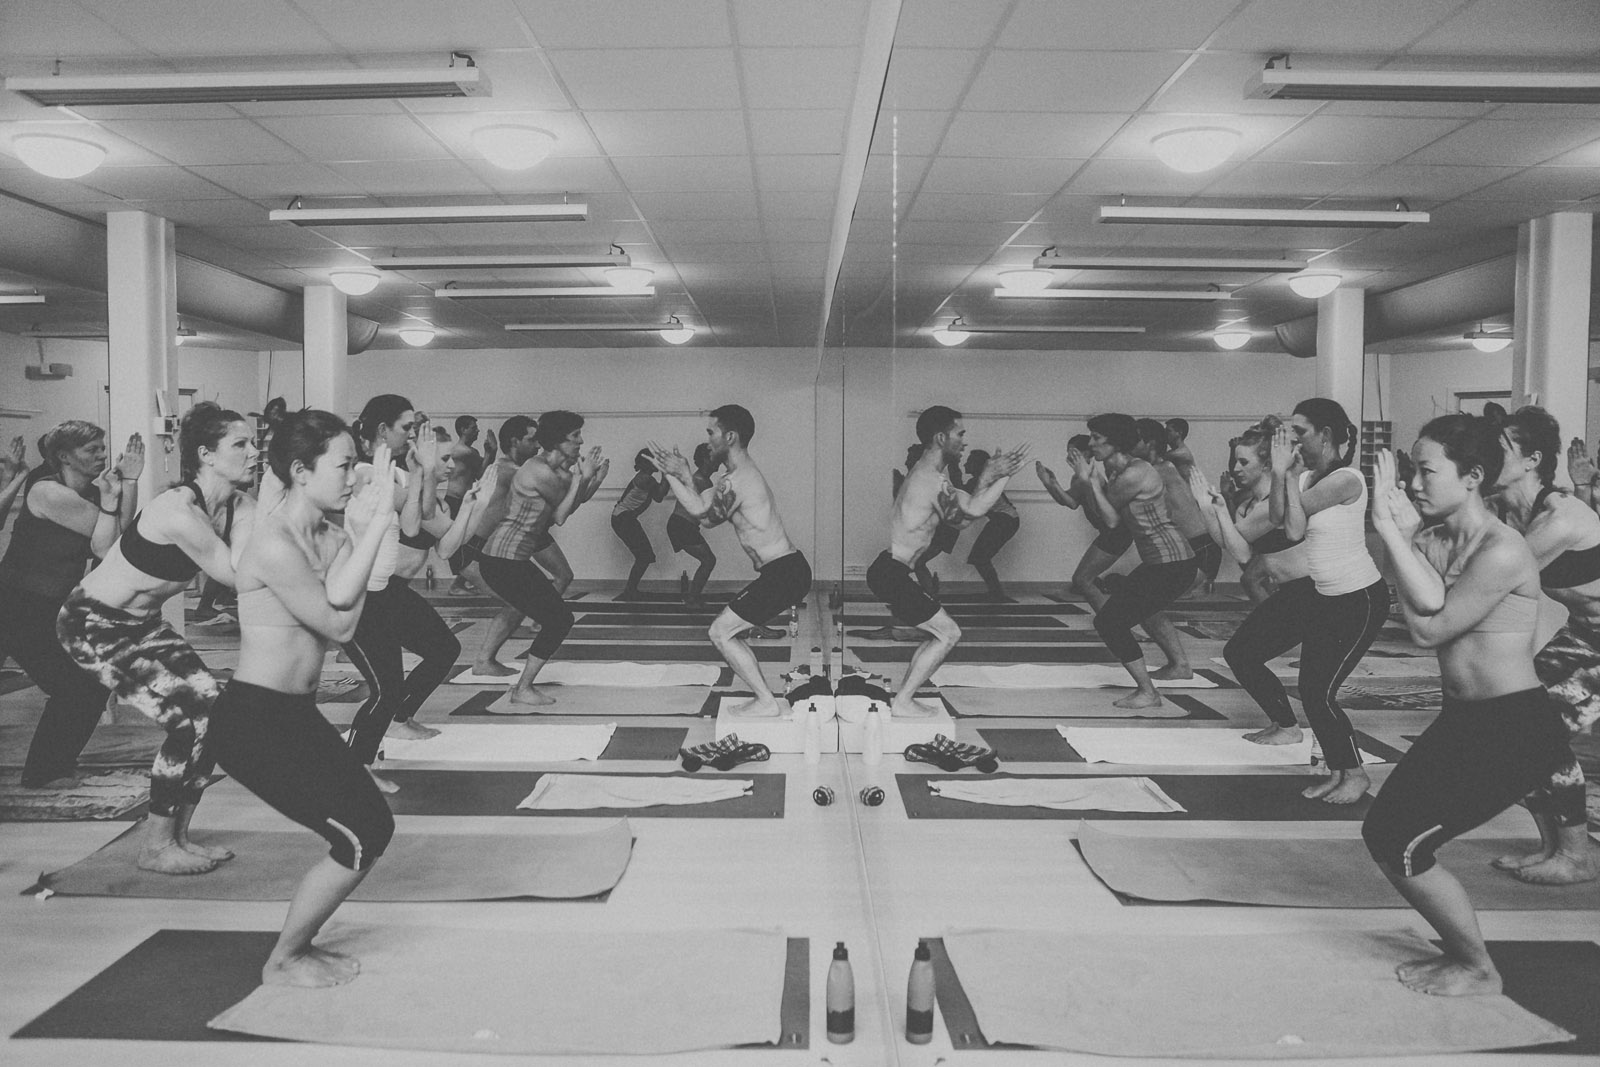 Hot-yoga-house-malmo-low-IMG_6544